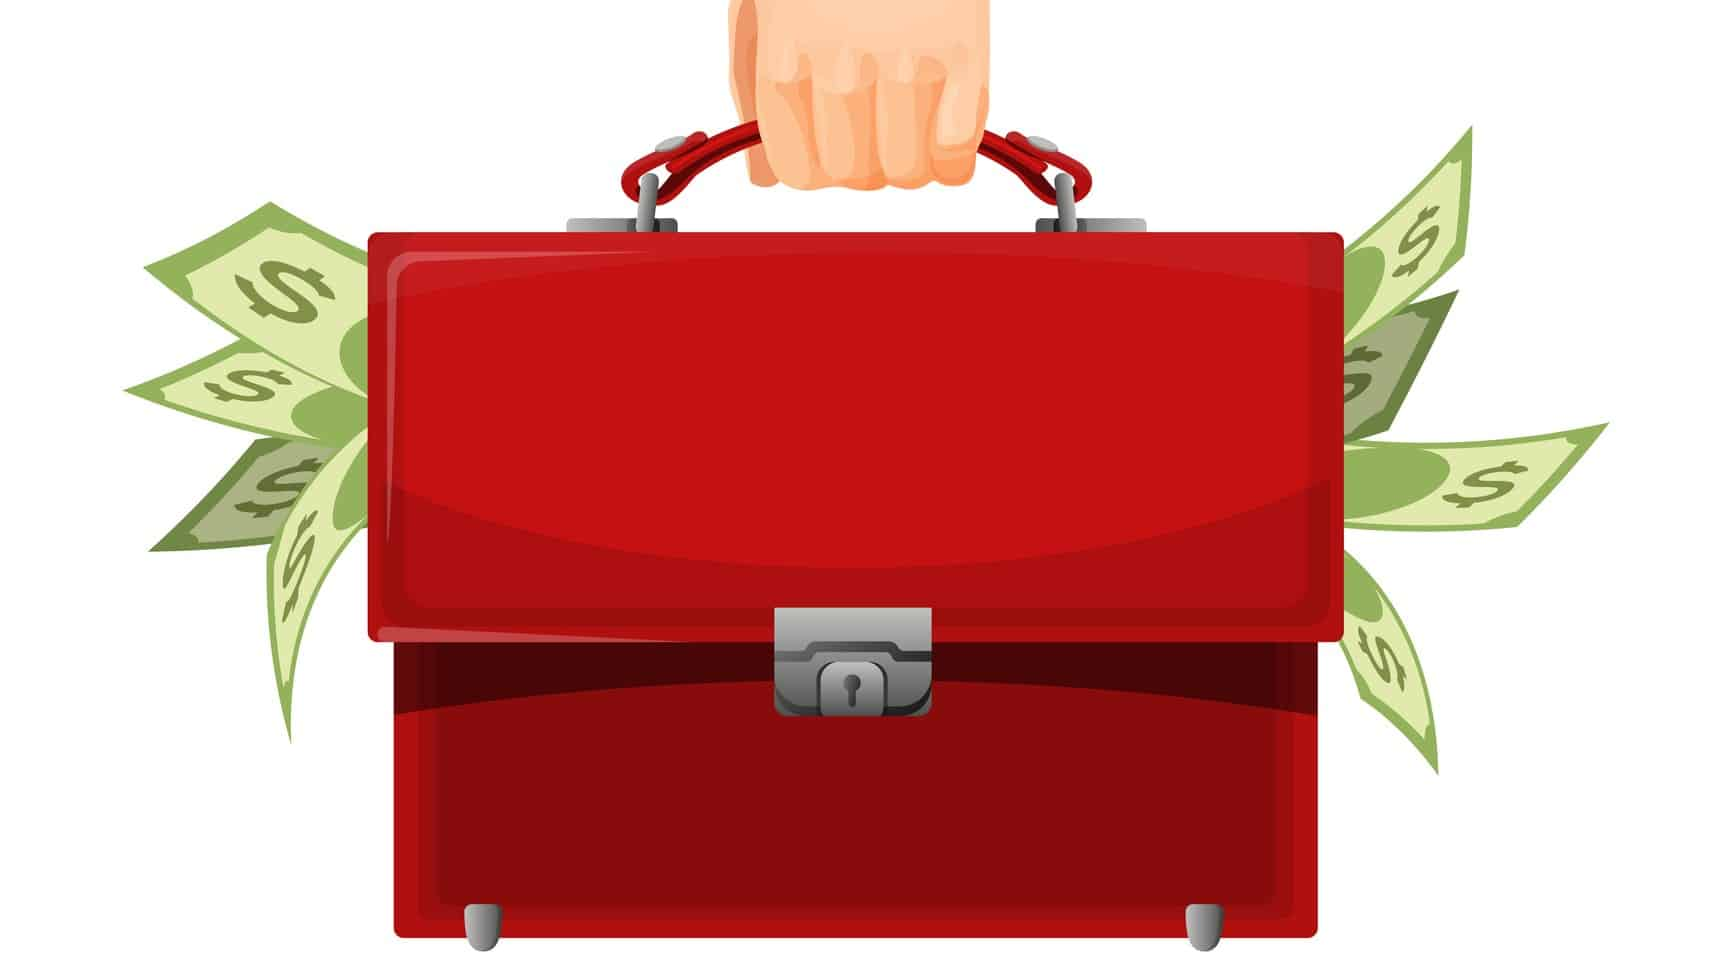 hand holding red briefcase stuffed with cash, investment portfolio